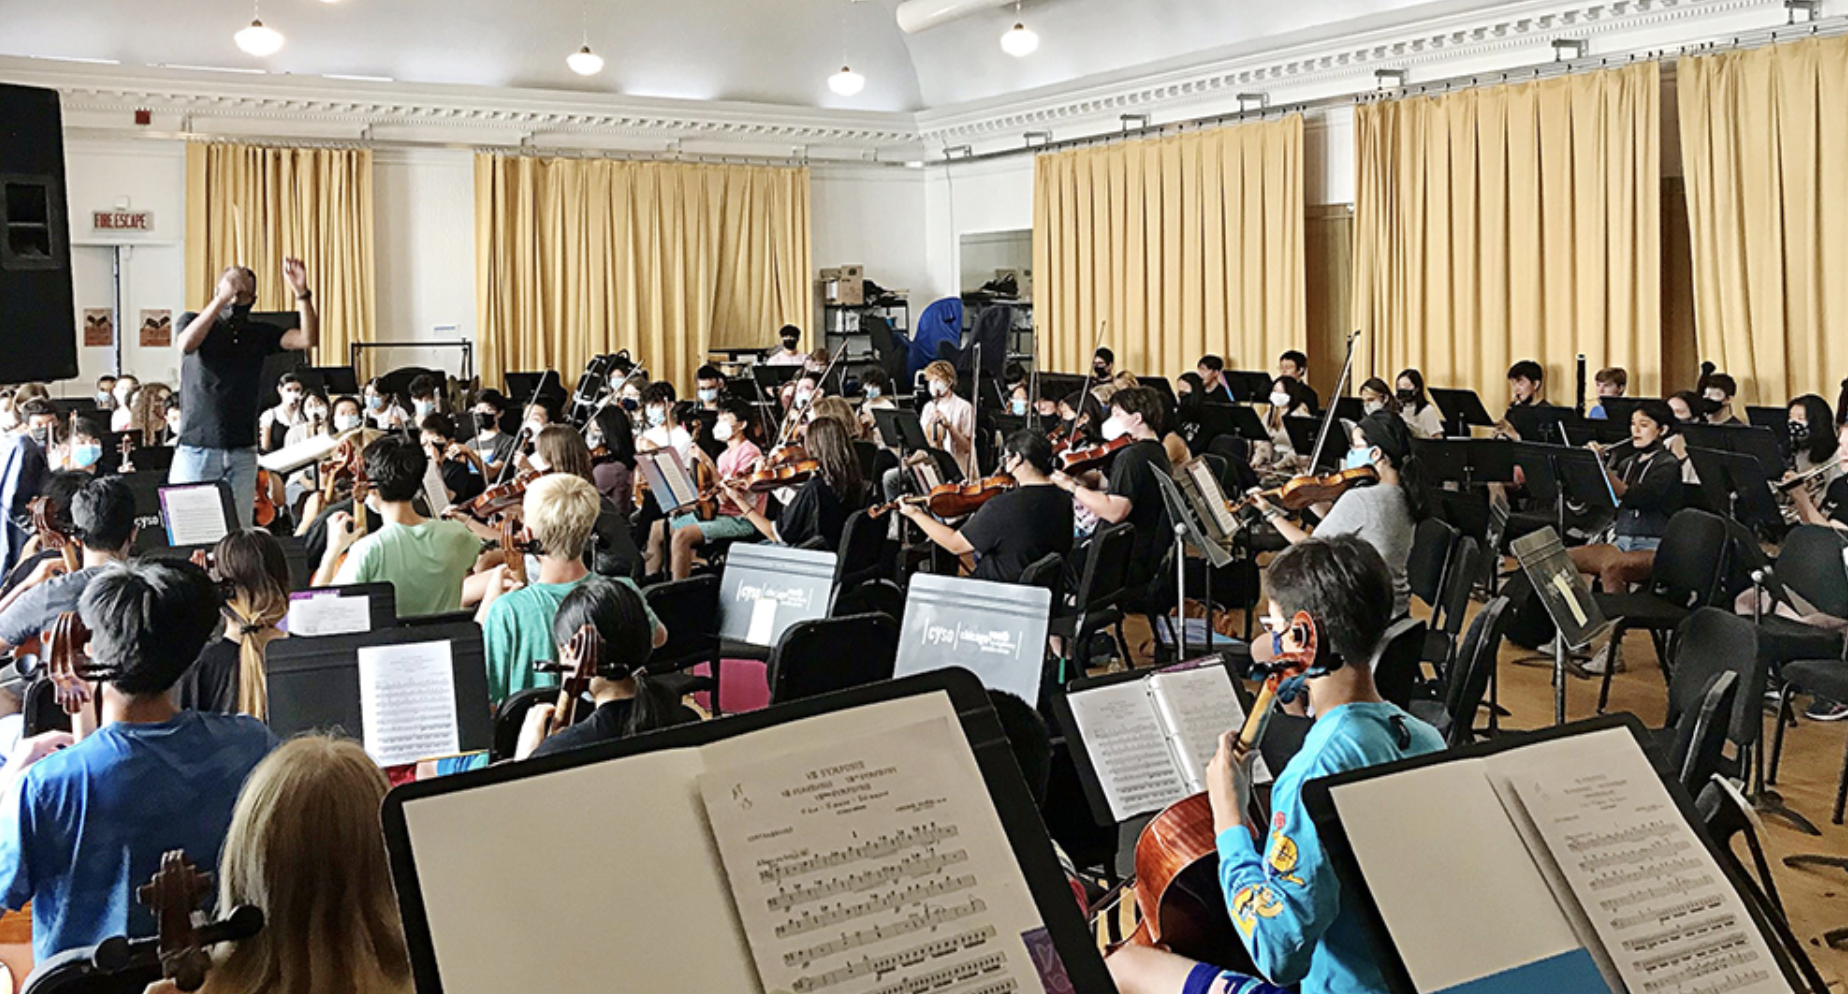 Philharmonic Orchestra rehearsal with conductor Terrance Malone Gray leading a packed room of young musicians